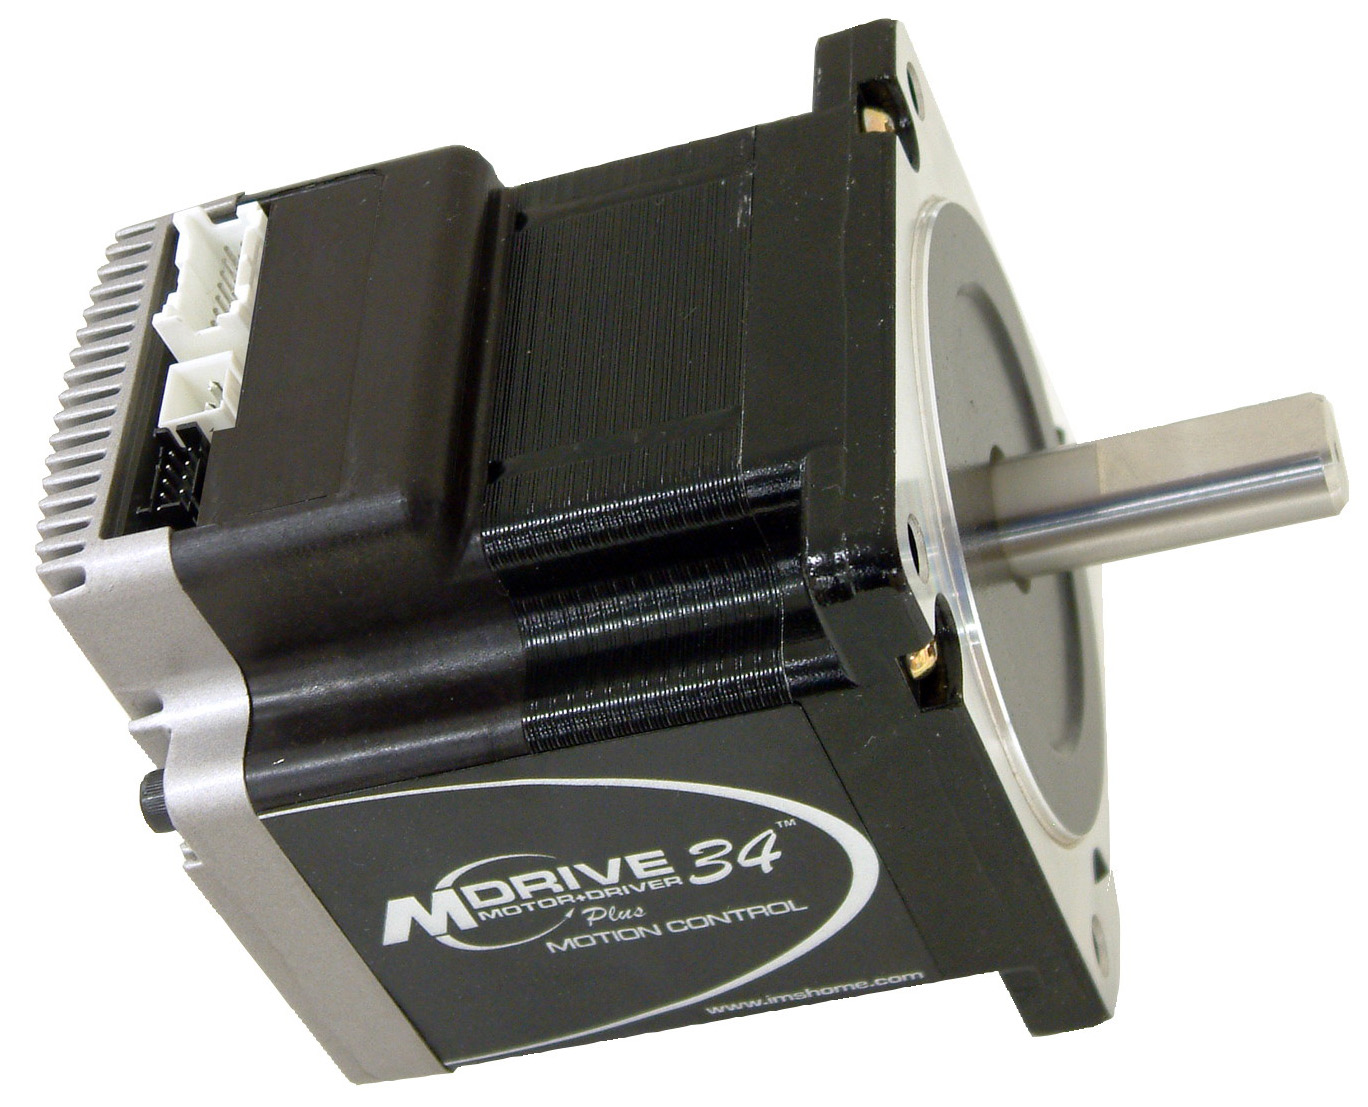 MDrive 34 Plus² Motion Control (RS485)